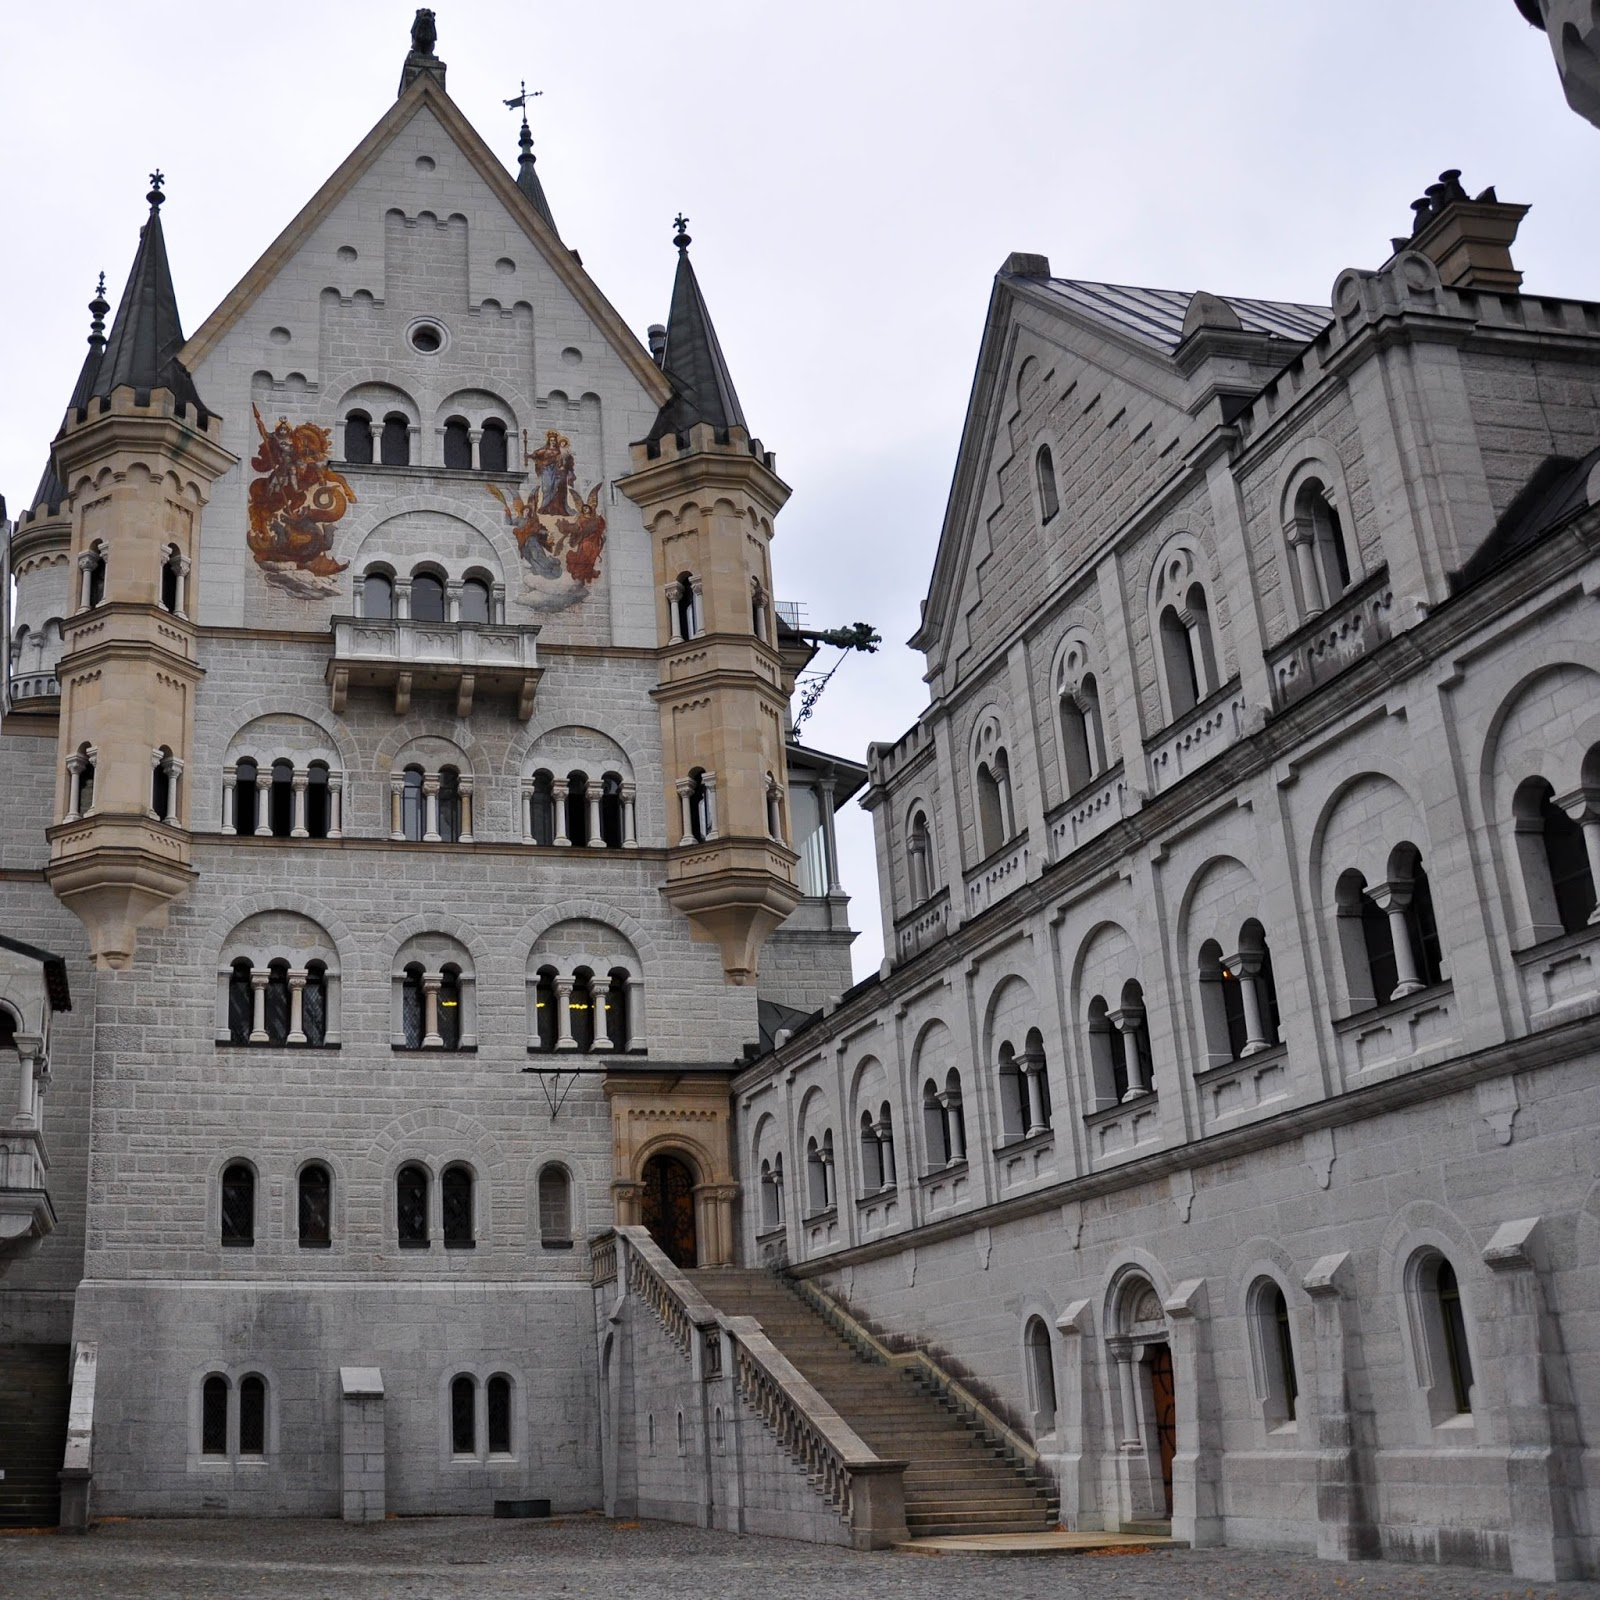 The Courtyard, Neuschwanstein Castle, Bavaria, Germany